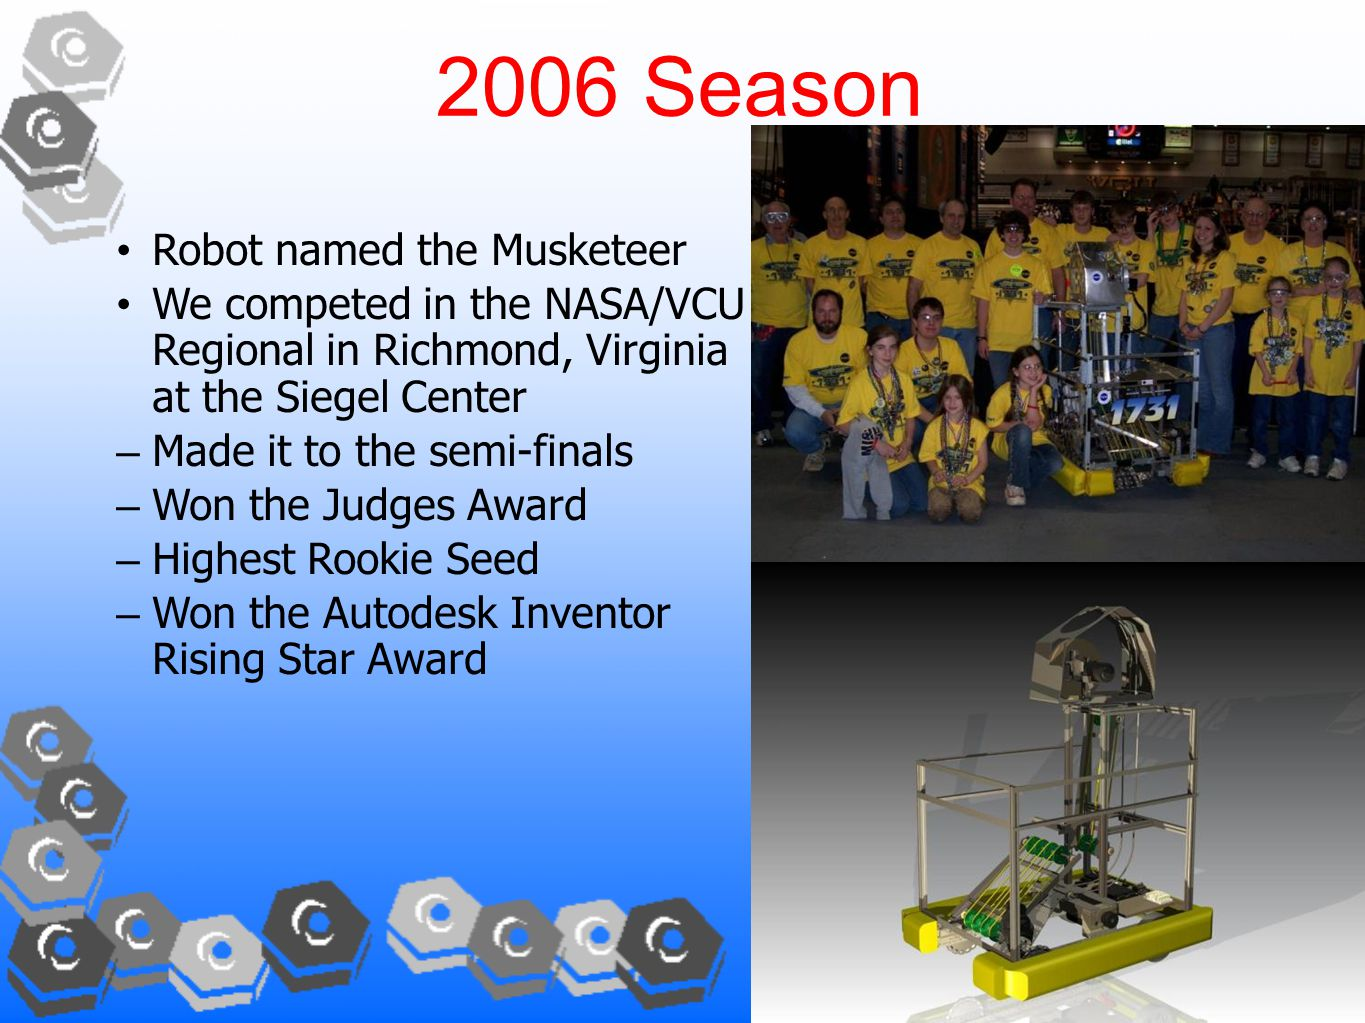 2006 Season Robot named the Musketeer We competed in the NASA/VCU Regional in Richmond, Virginia at the Siegel Center – Made it to the semi-finals – Won the Judges Award – Highest Rookie Seed – Won the Autodesk Inventor Rising Star Award